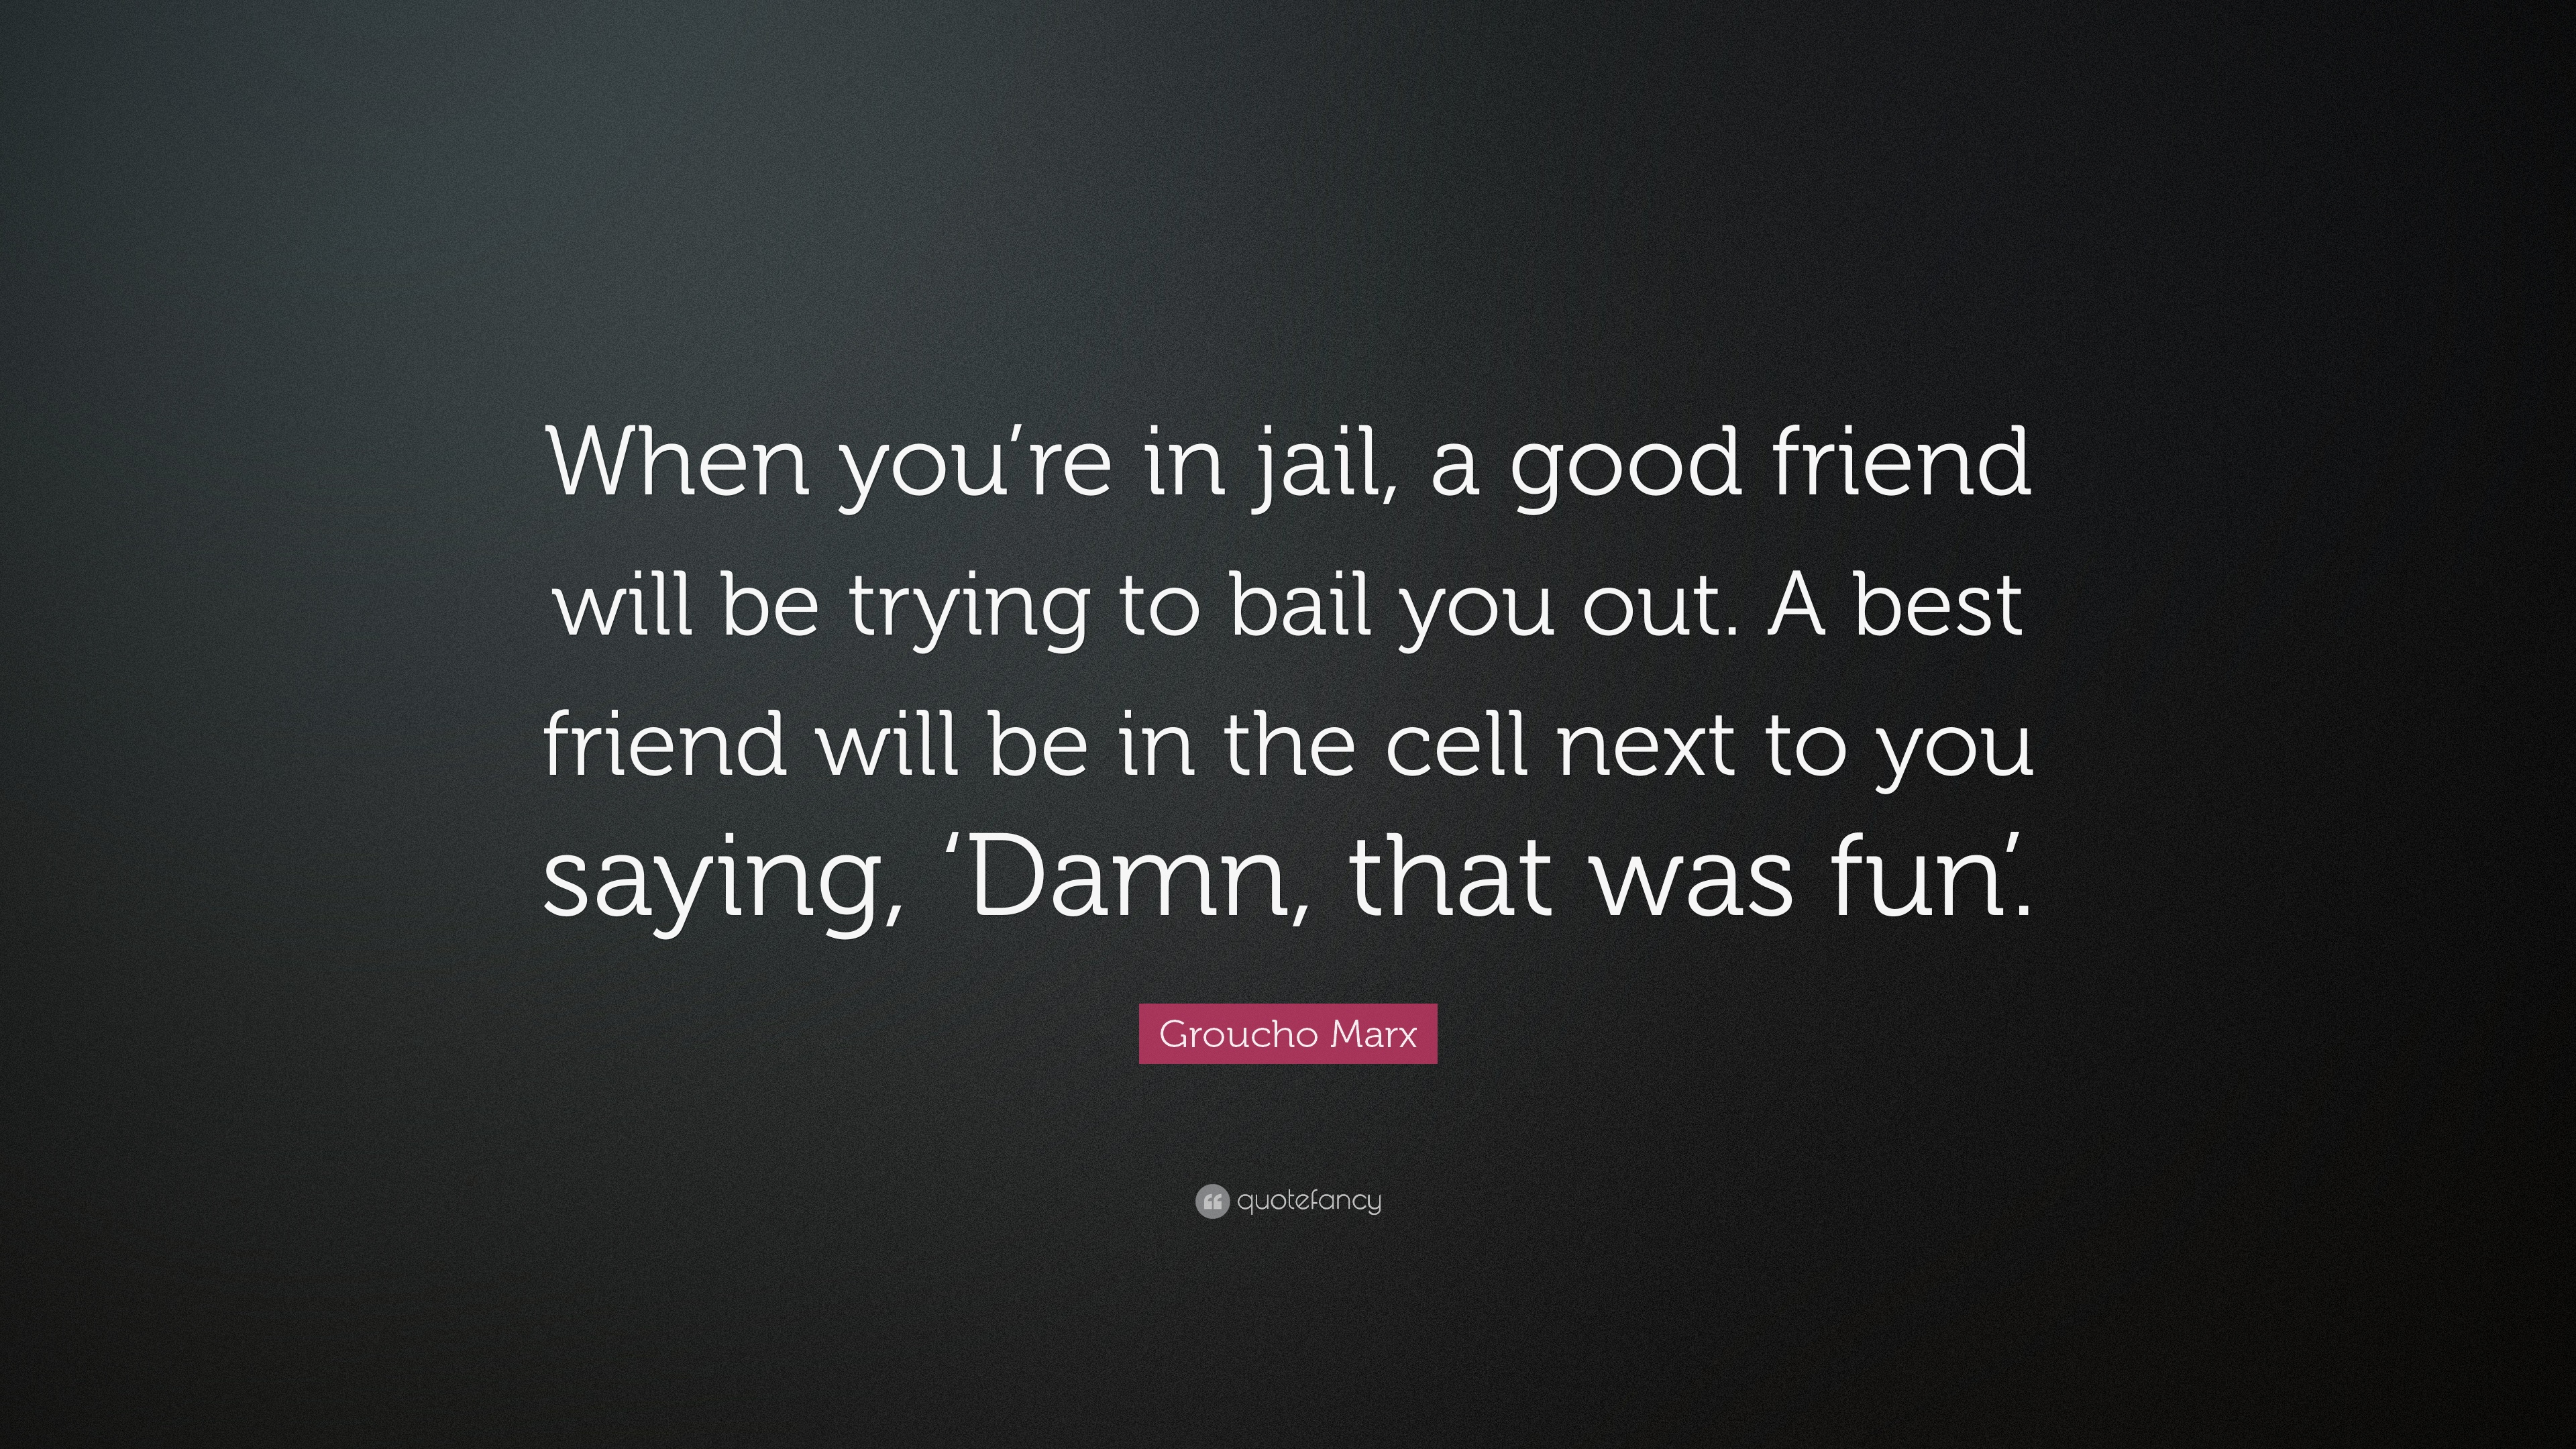 Groucho Marx Quote When Youre In Jail A Good Friend Will Be